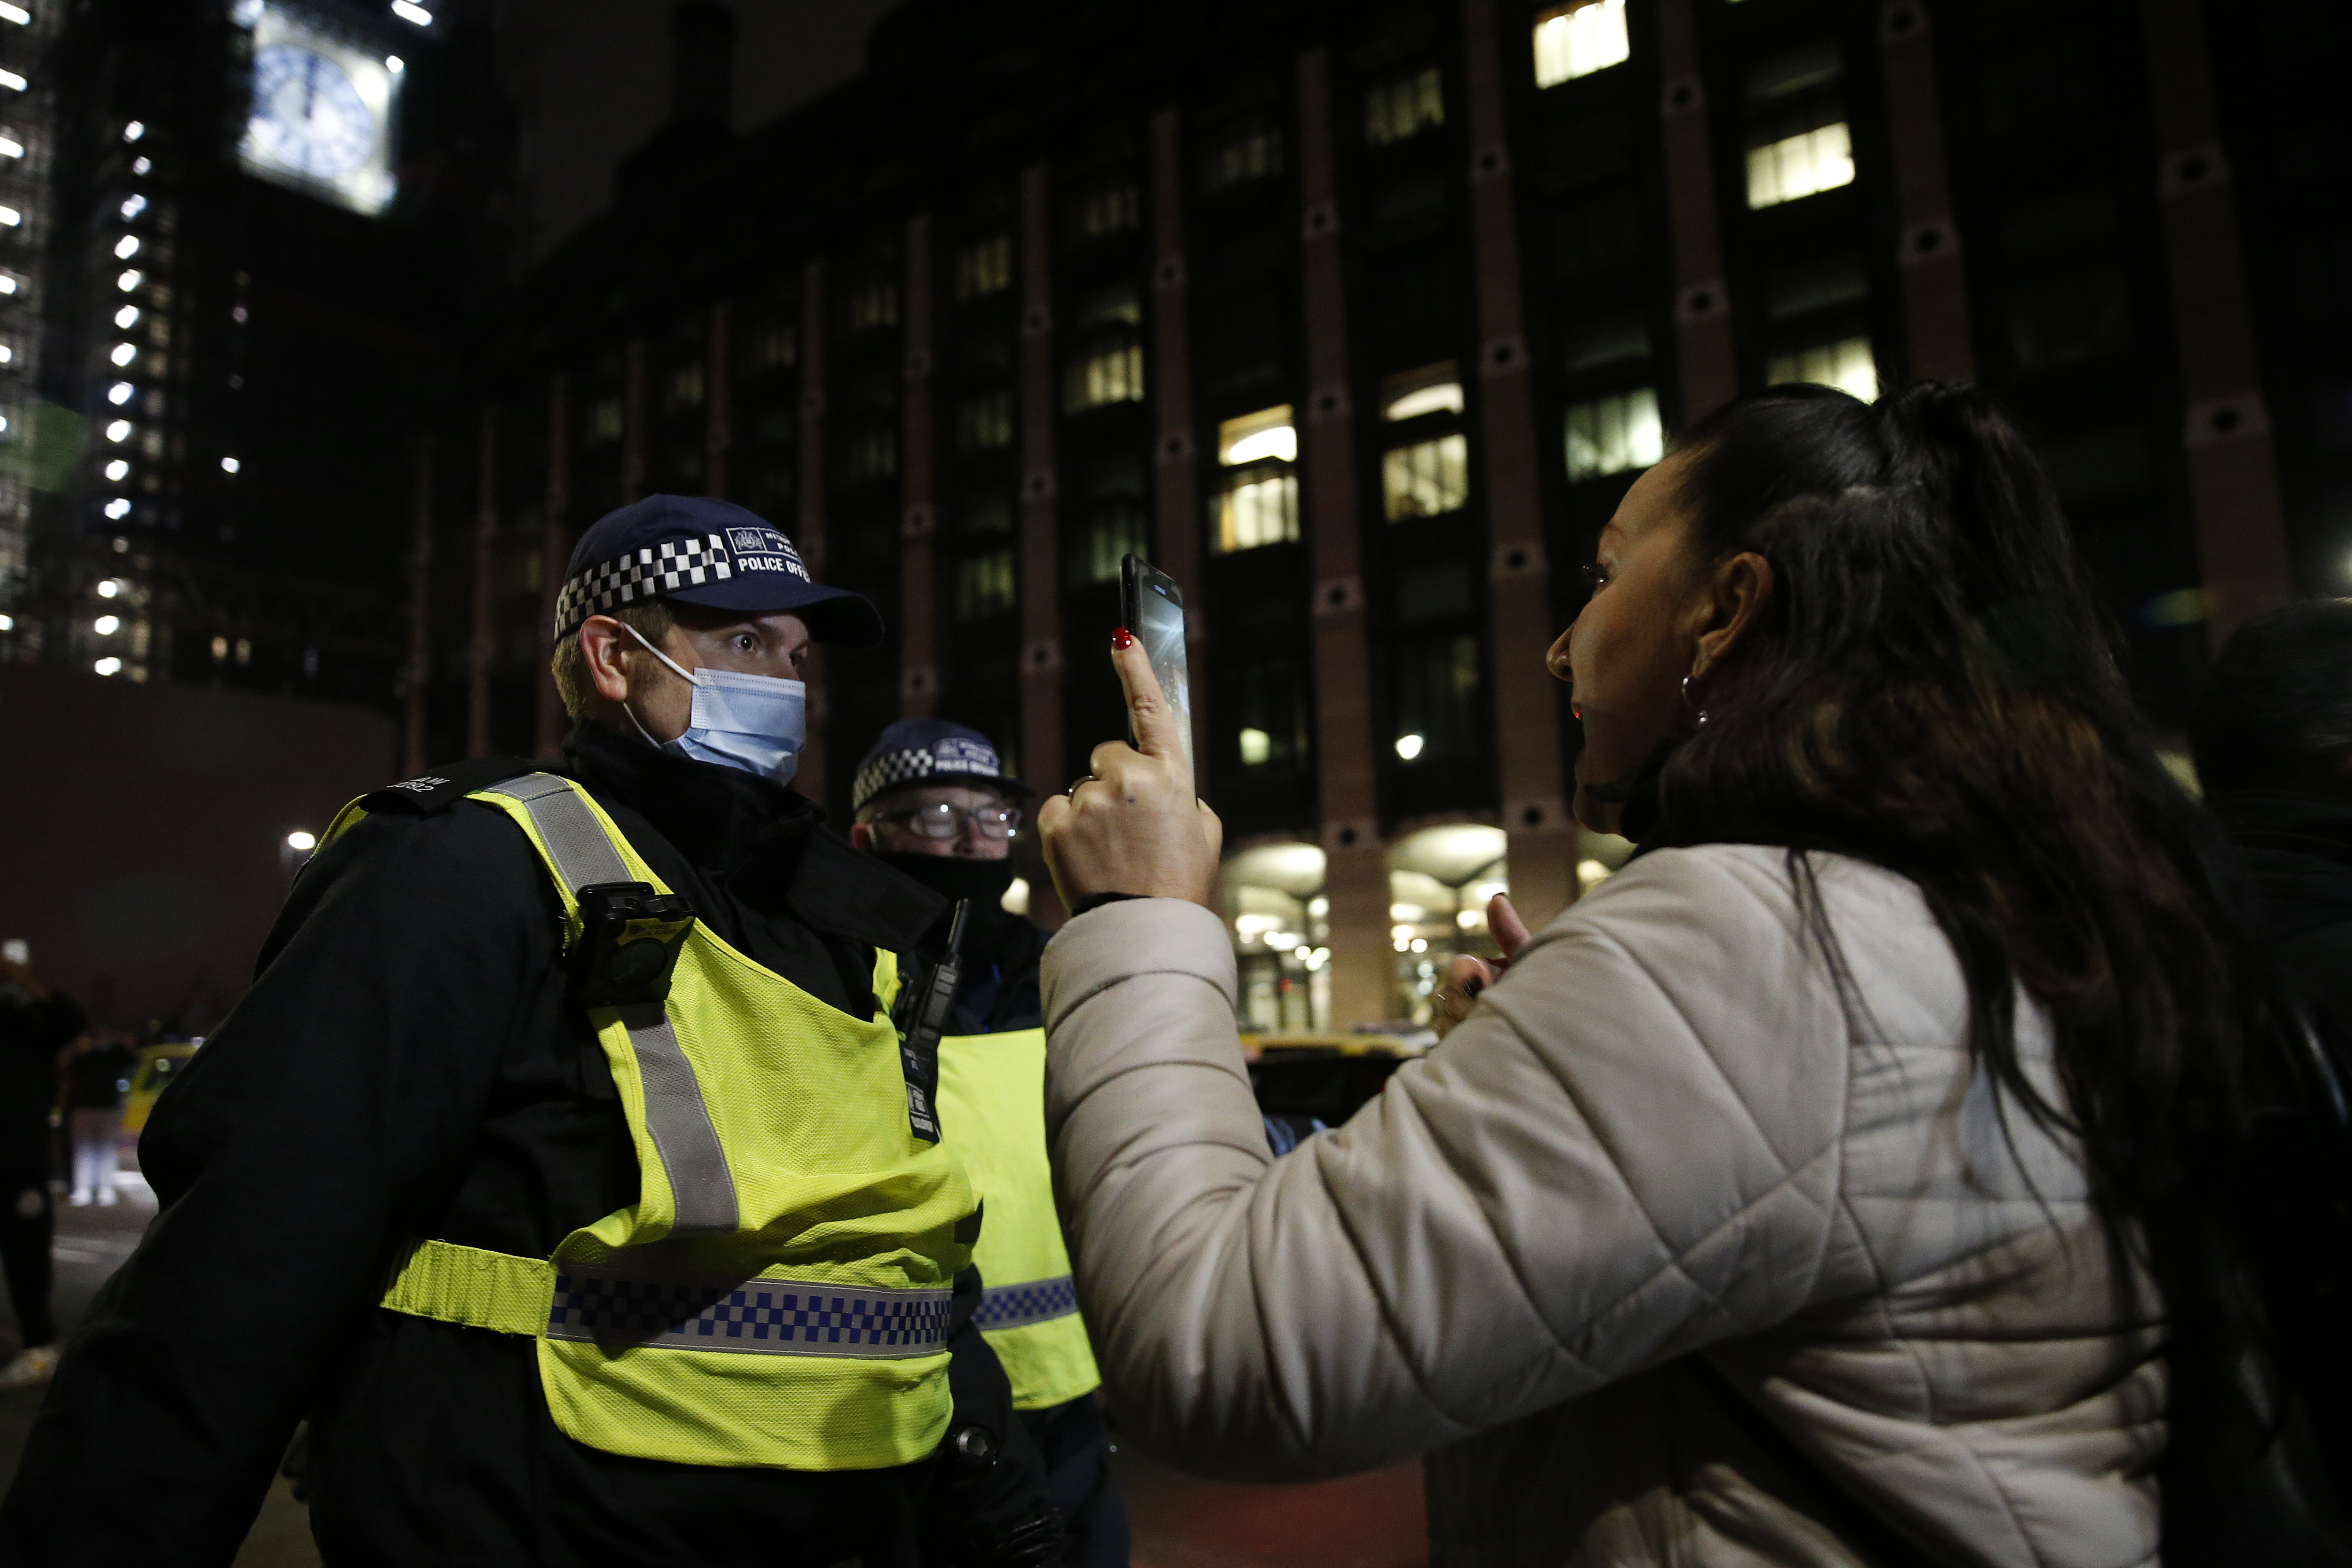 LONDON, ENGLAND - JANUARY 1: Met Police officers attempt to disperse crowds gathered near Westminster Bridge on January 1, 2021 in London, United Kingdom. New Year's Eve Celebrations have been curtailed in the UK this year dues to Coronavirus pandemic restrictions. With most of the UK in tiers three and four socialising is off limits. (Photo by Hollie Adams/Getty Images)